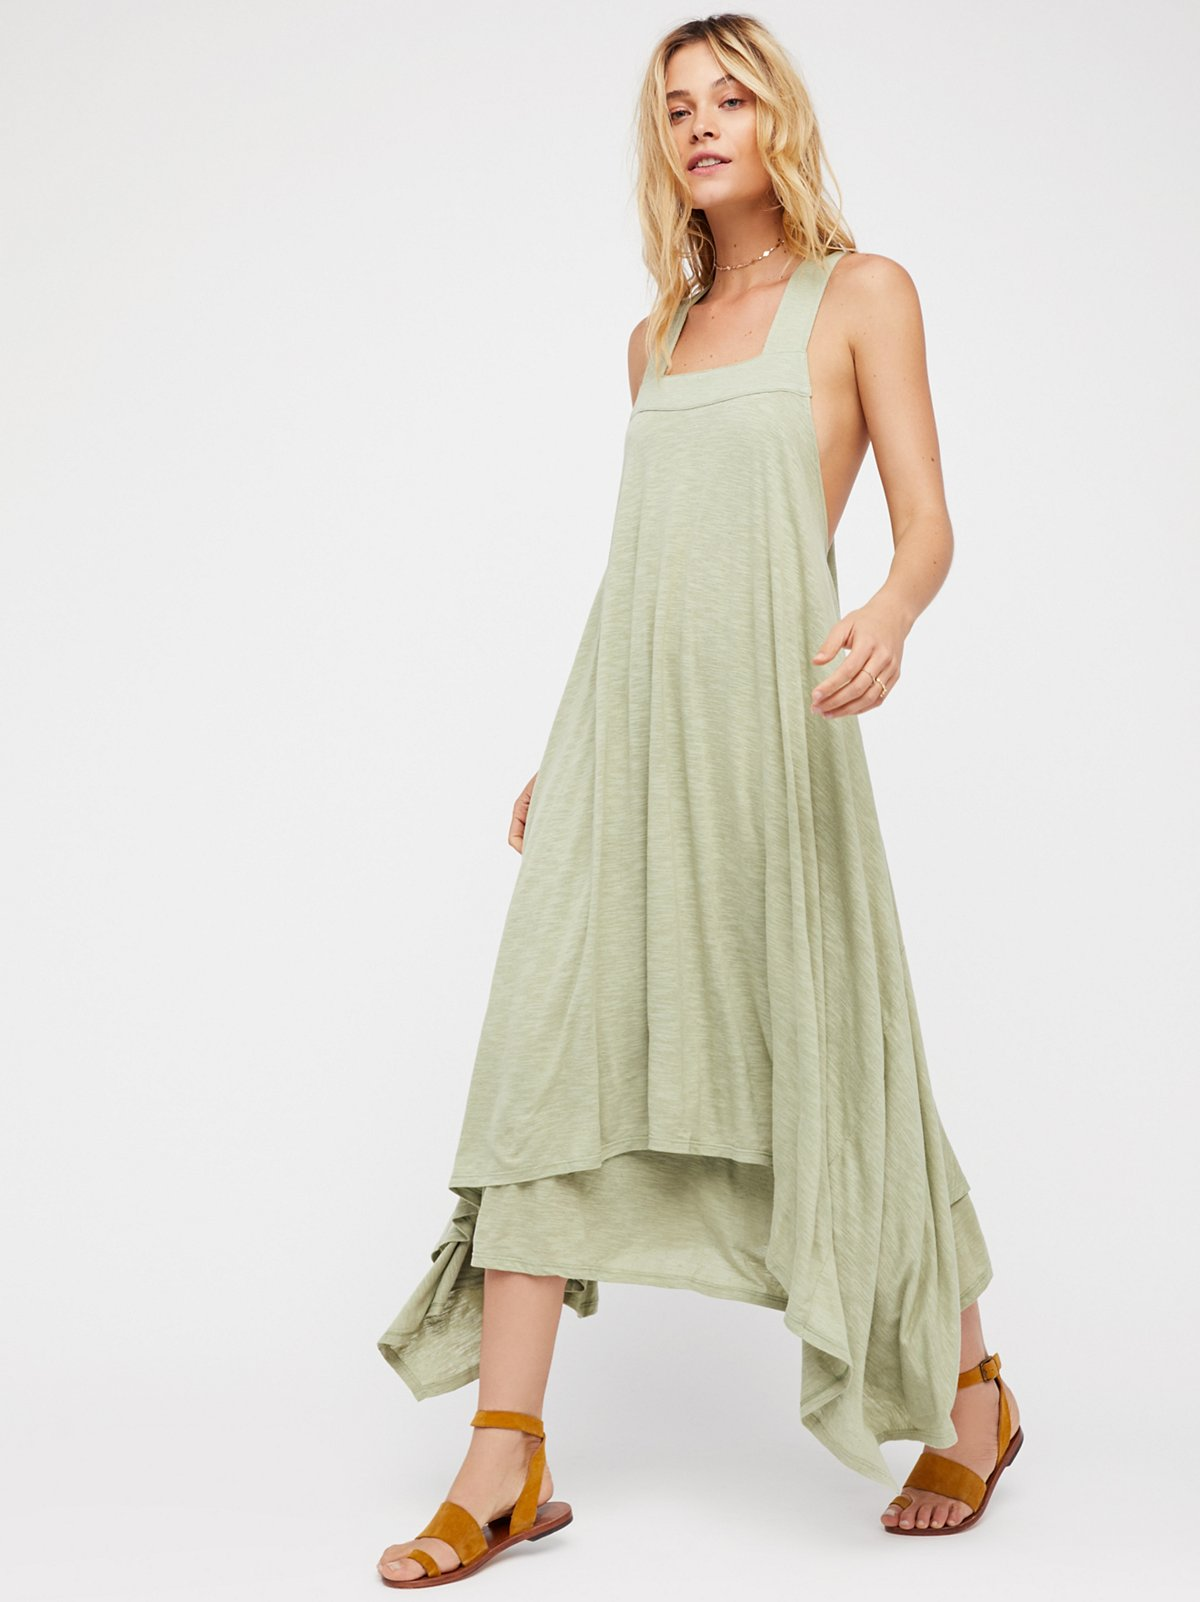 Double Trouble Maxi Dress